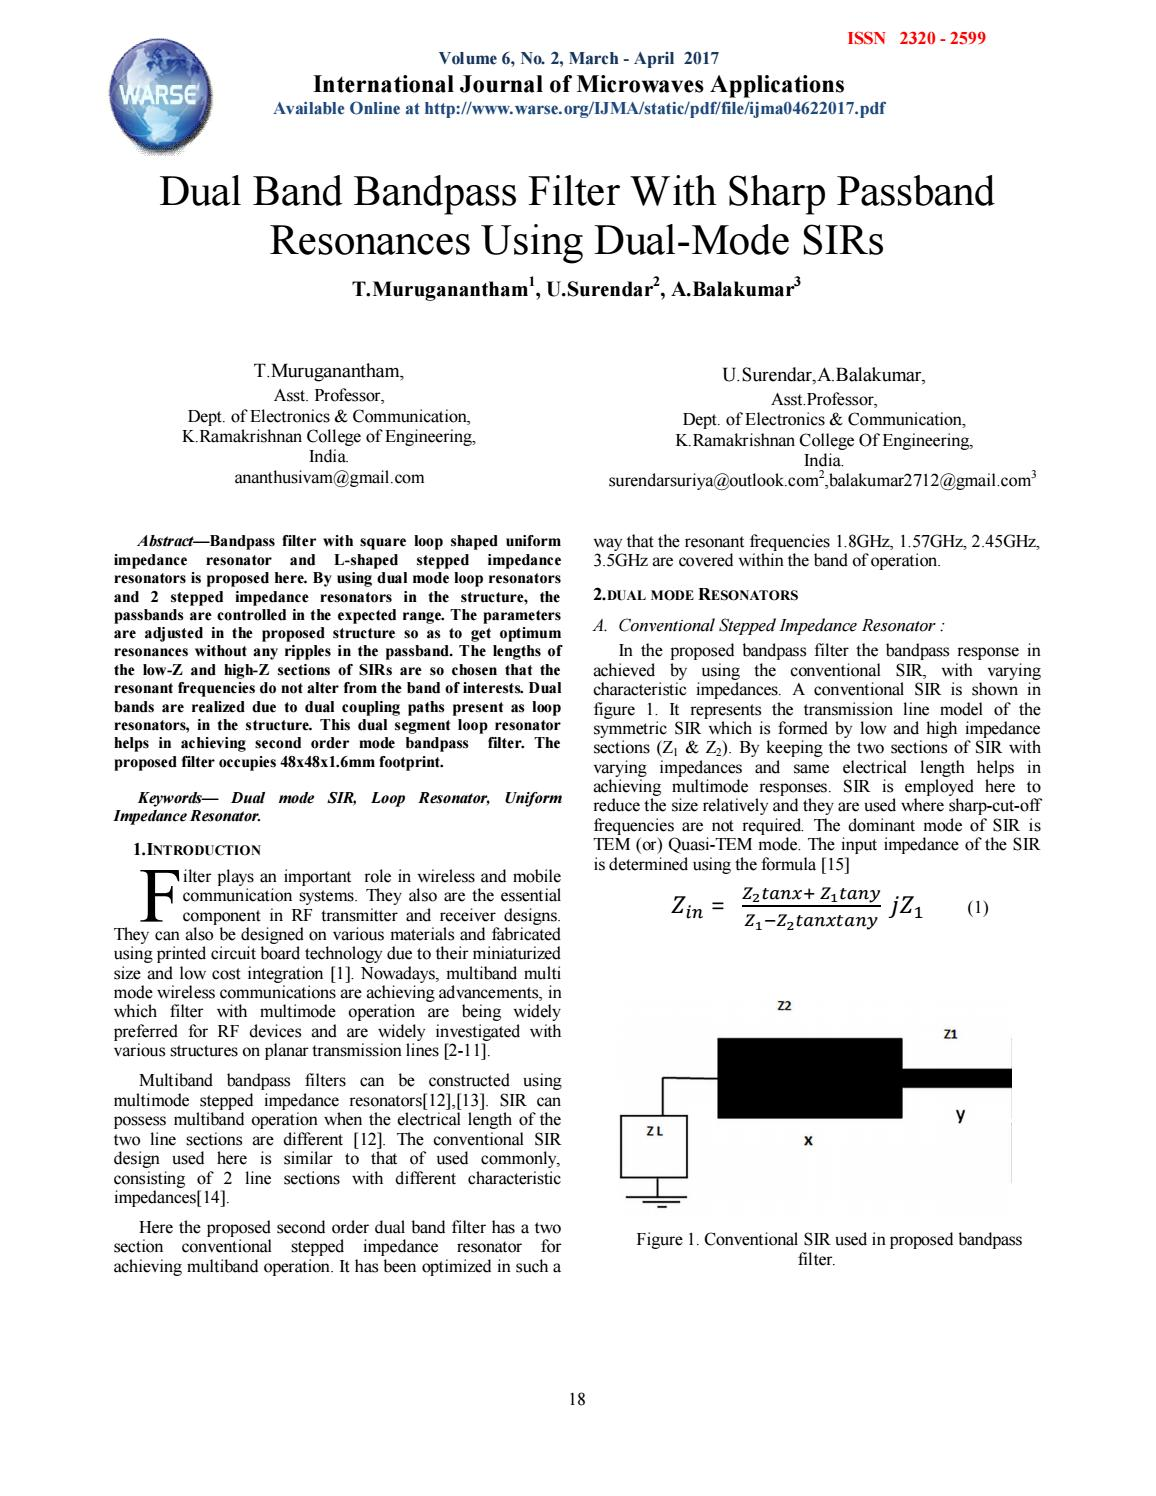 Dual Band Bandpass Filter With Sharp Passband Resonances Using Pass Filters Mode Sirs By The World Academy Of Research In Science And Engineering Issuu